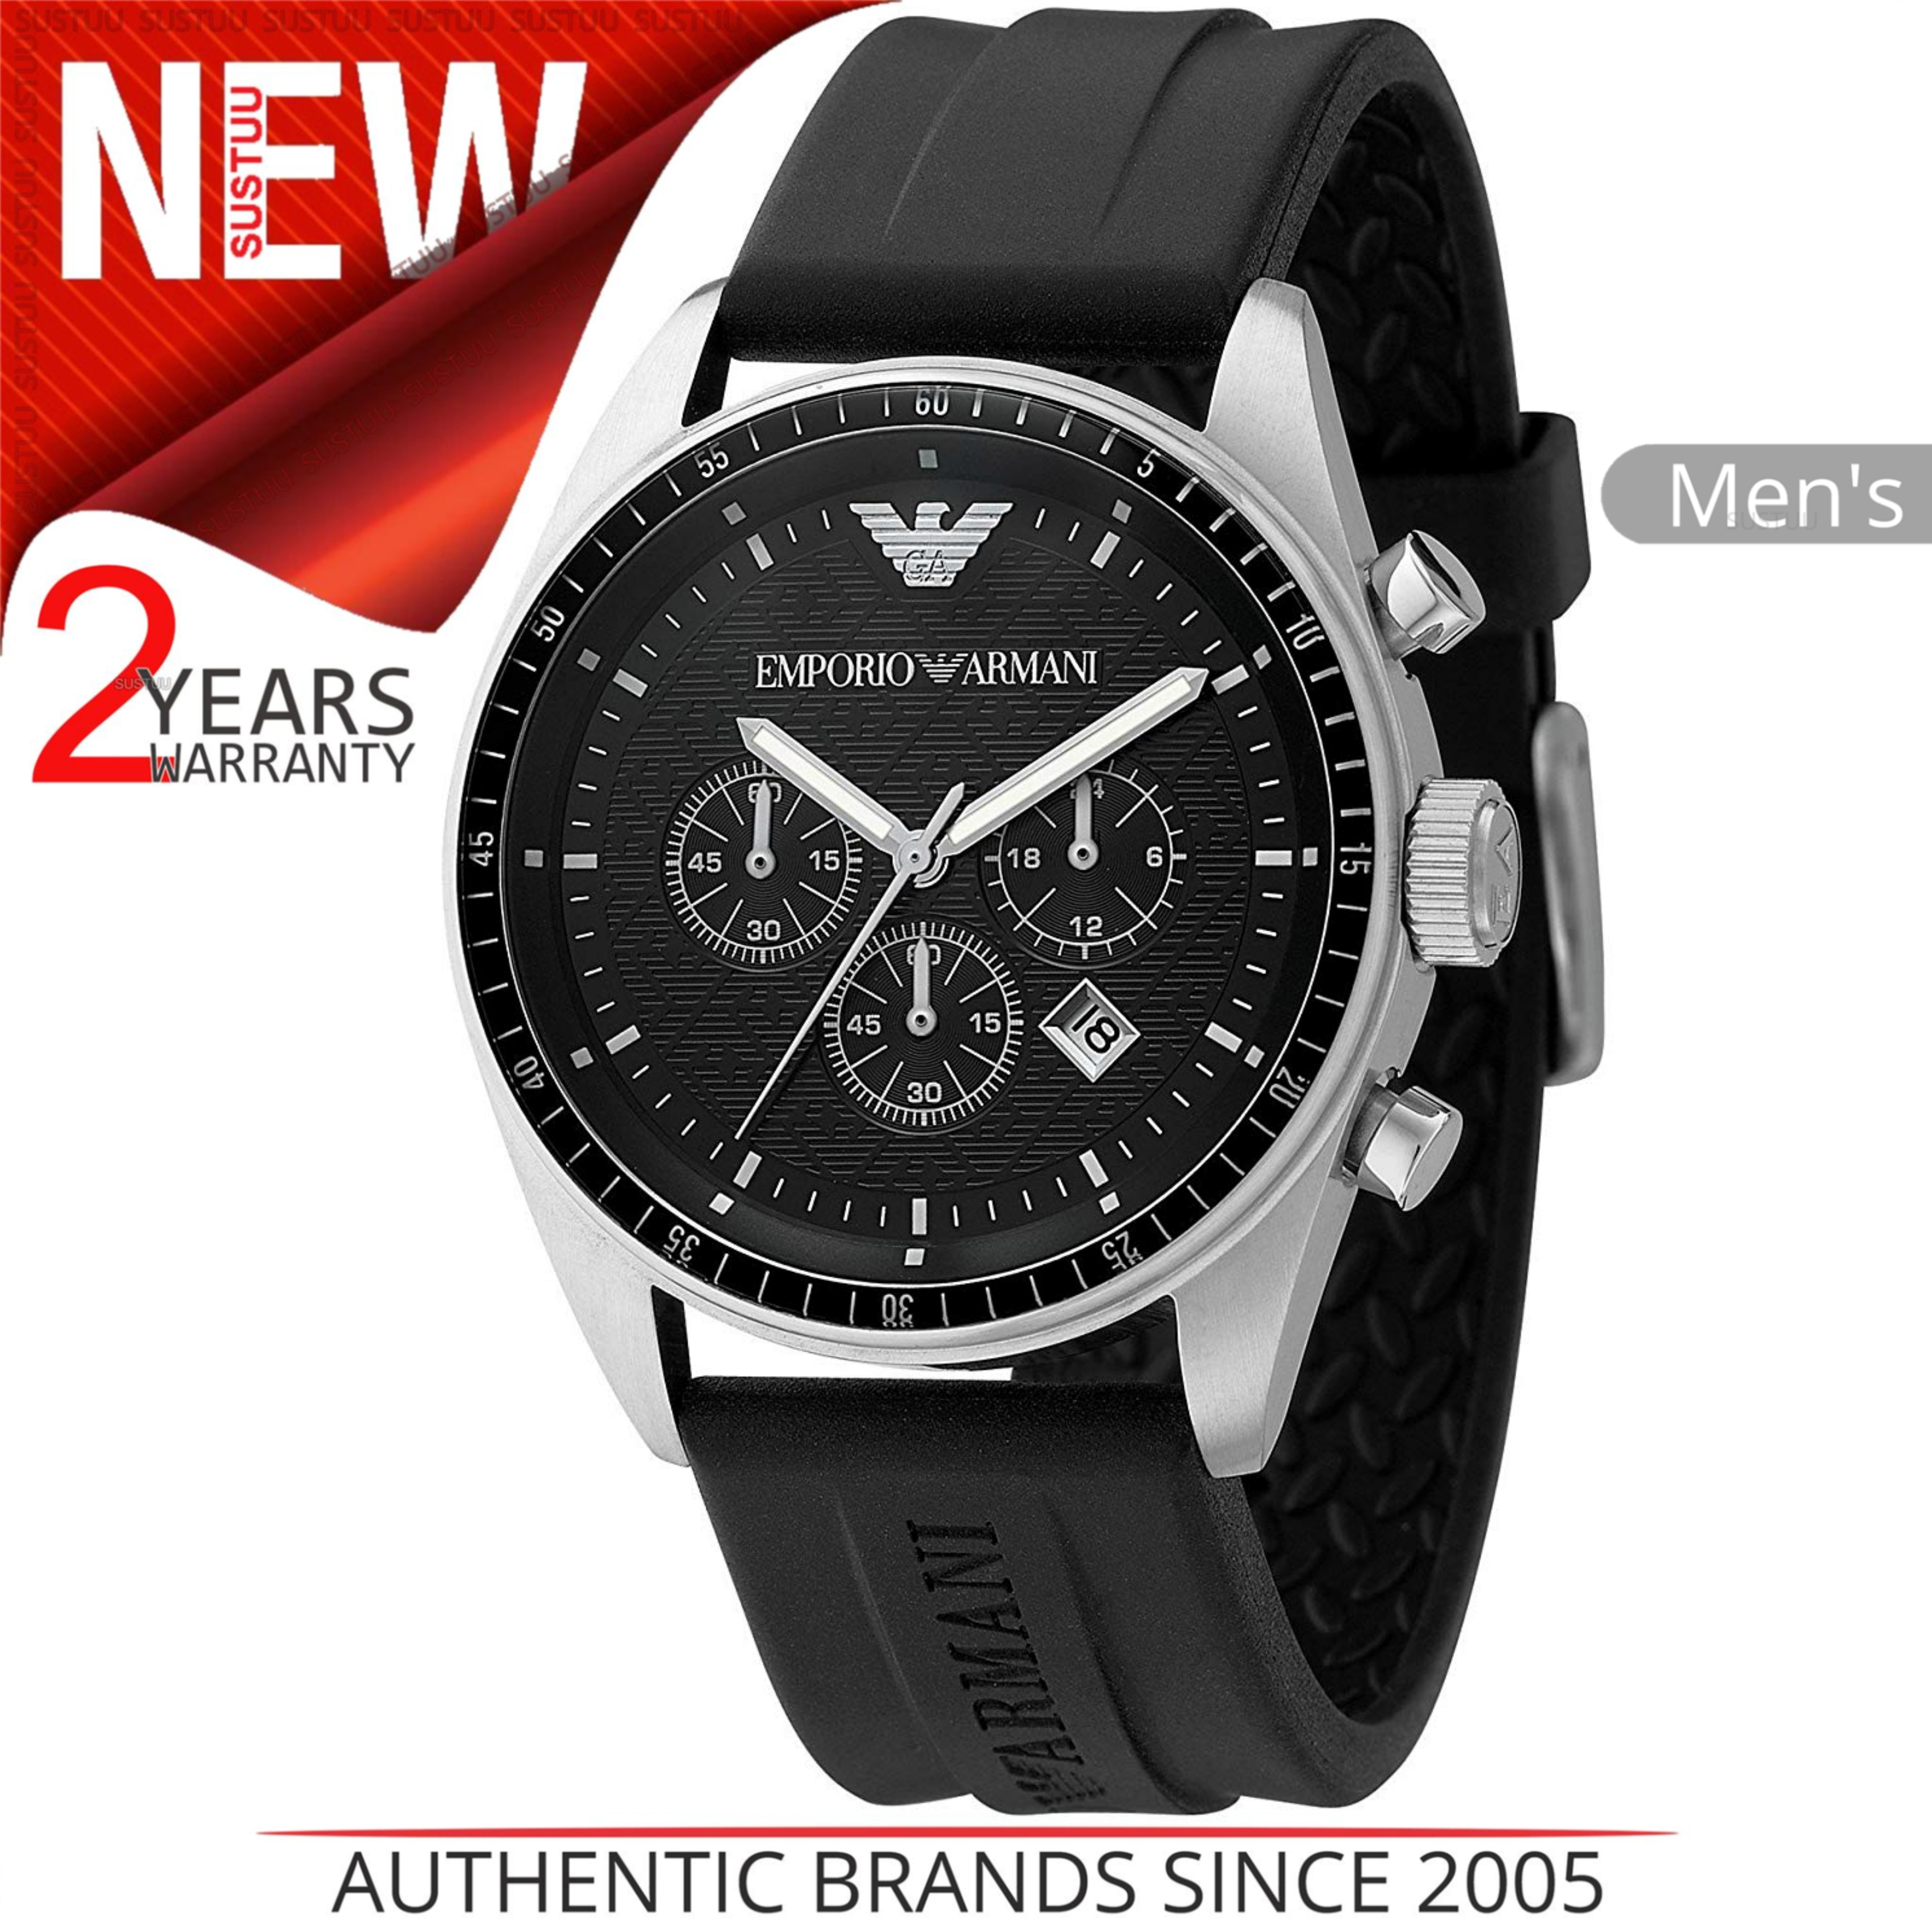 93a60aab2b9d8 Details about Emporio Armani Sportivo Mens Watch│Chronograph Dial│Black  Rubber Strap│AR0527